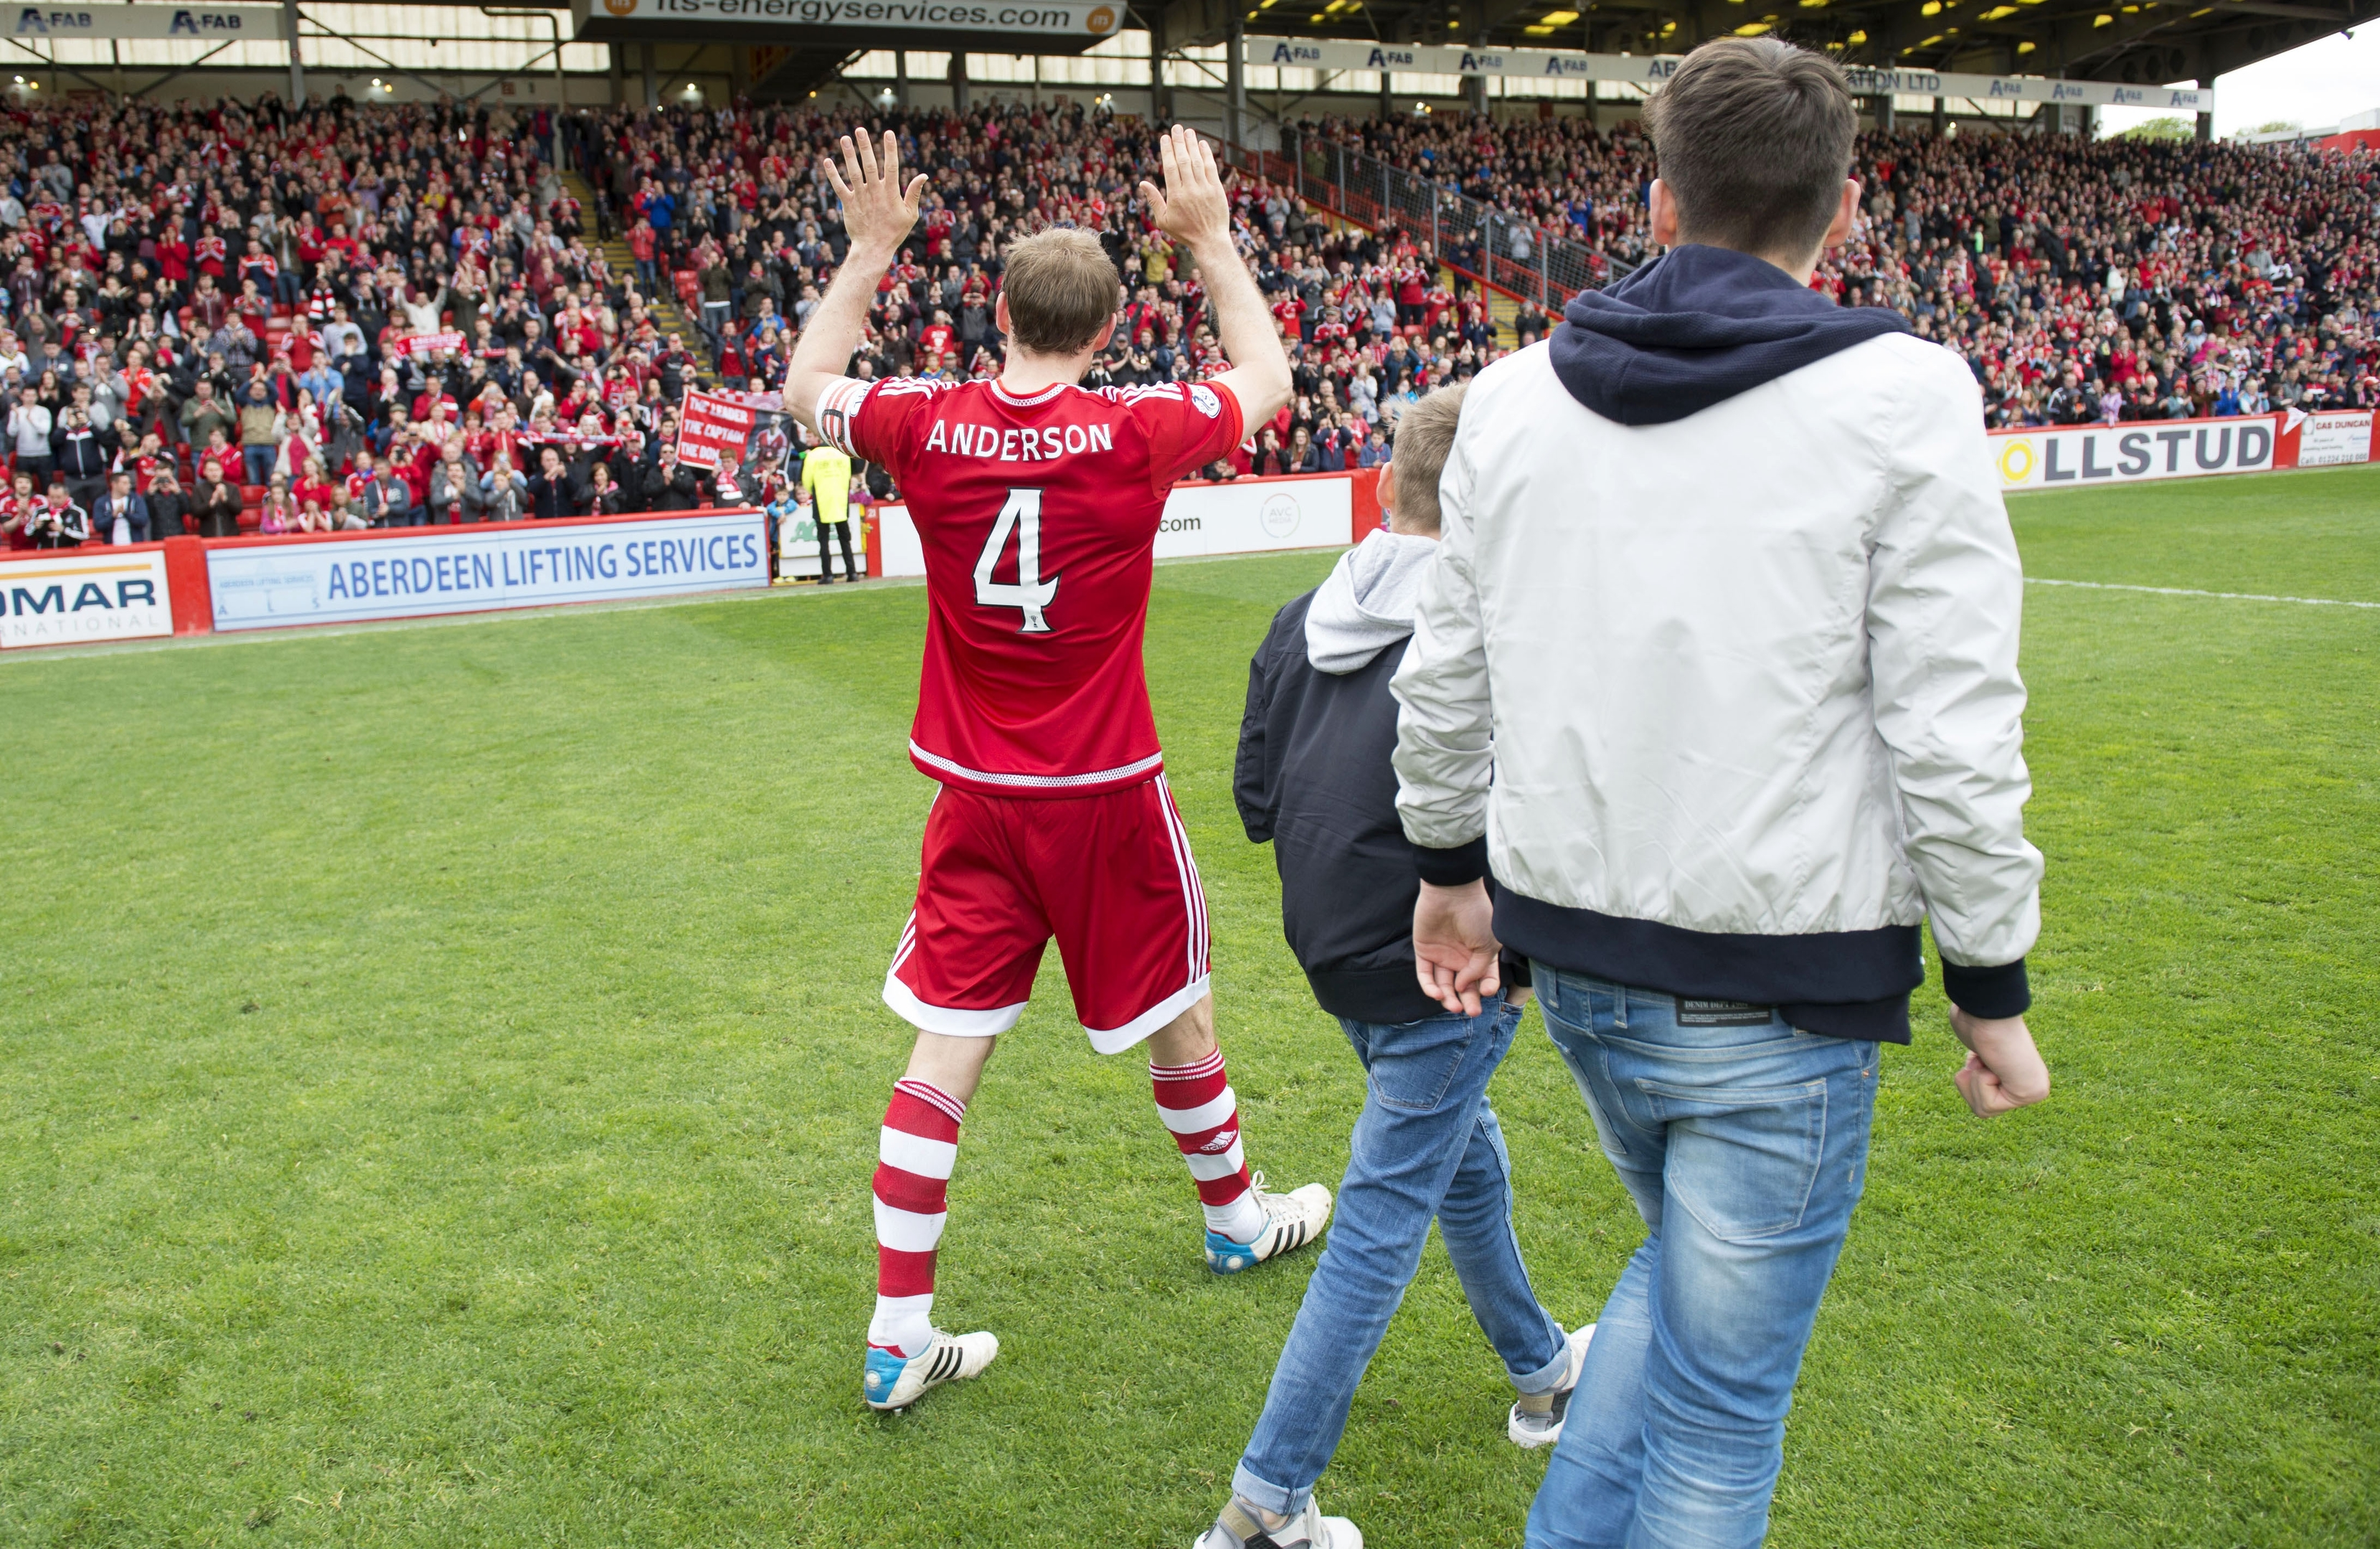 Anderson says his final goodbyes to the Dons support